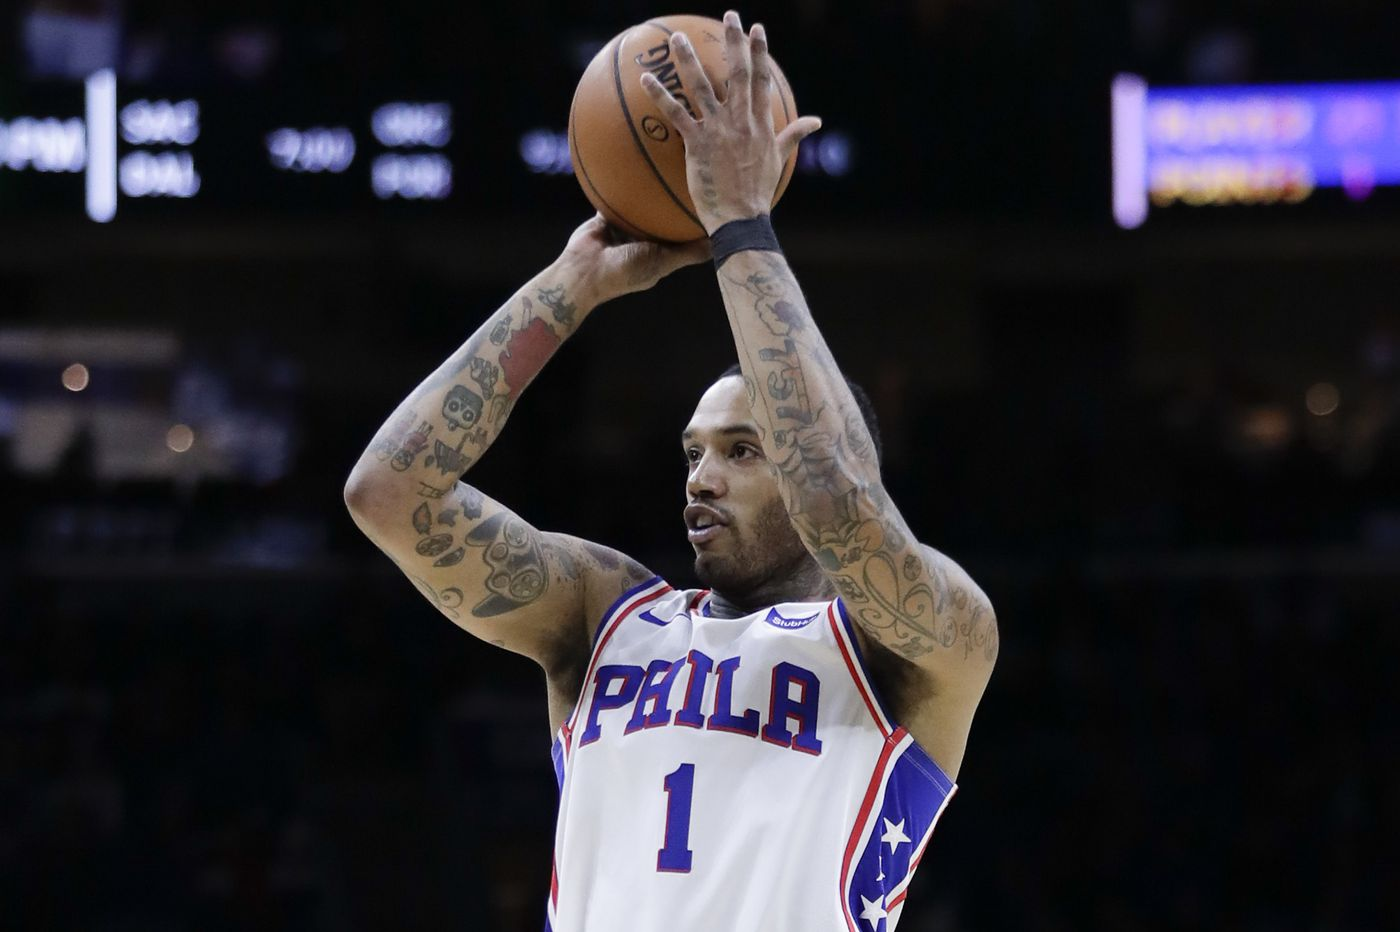 Mike Scott was overshadowed by Joel Embiid but made major contribution to Sixers' win at Boston | Off the Drib